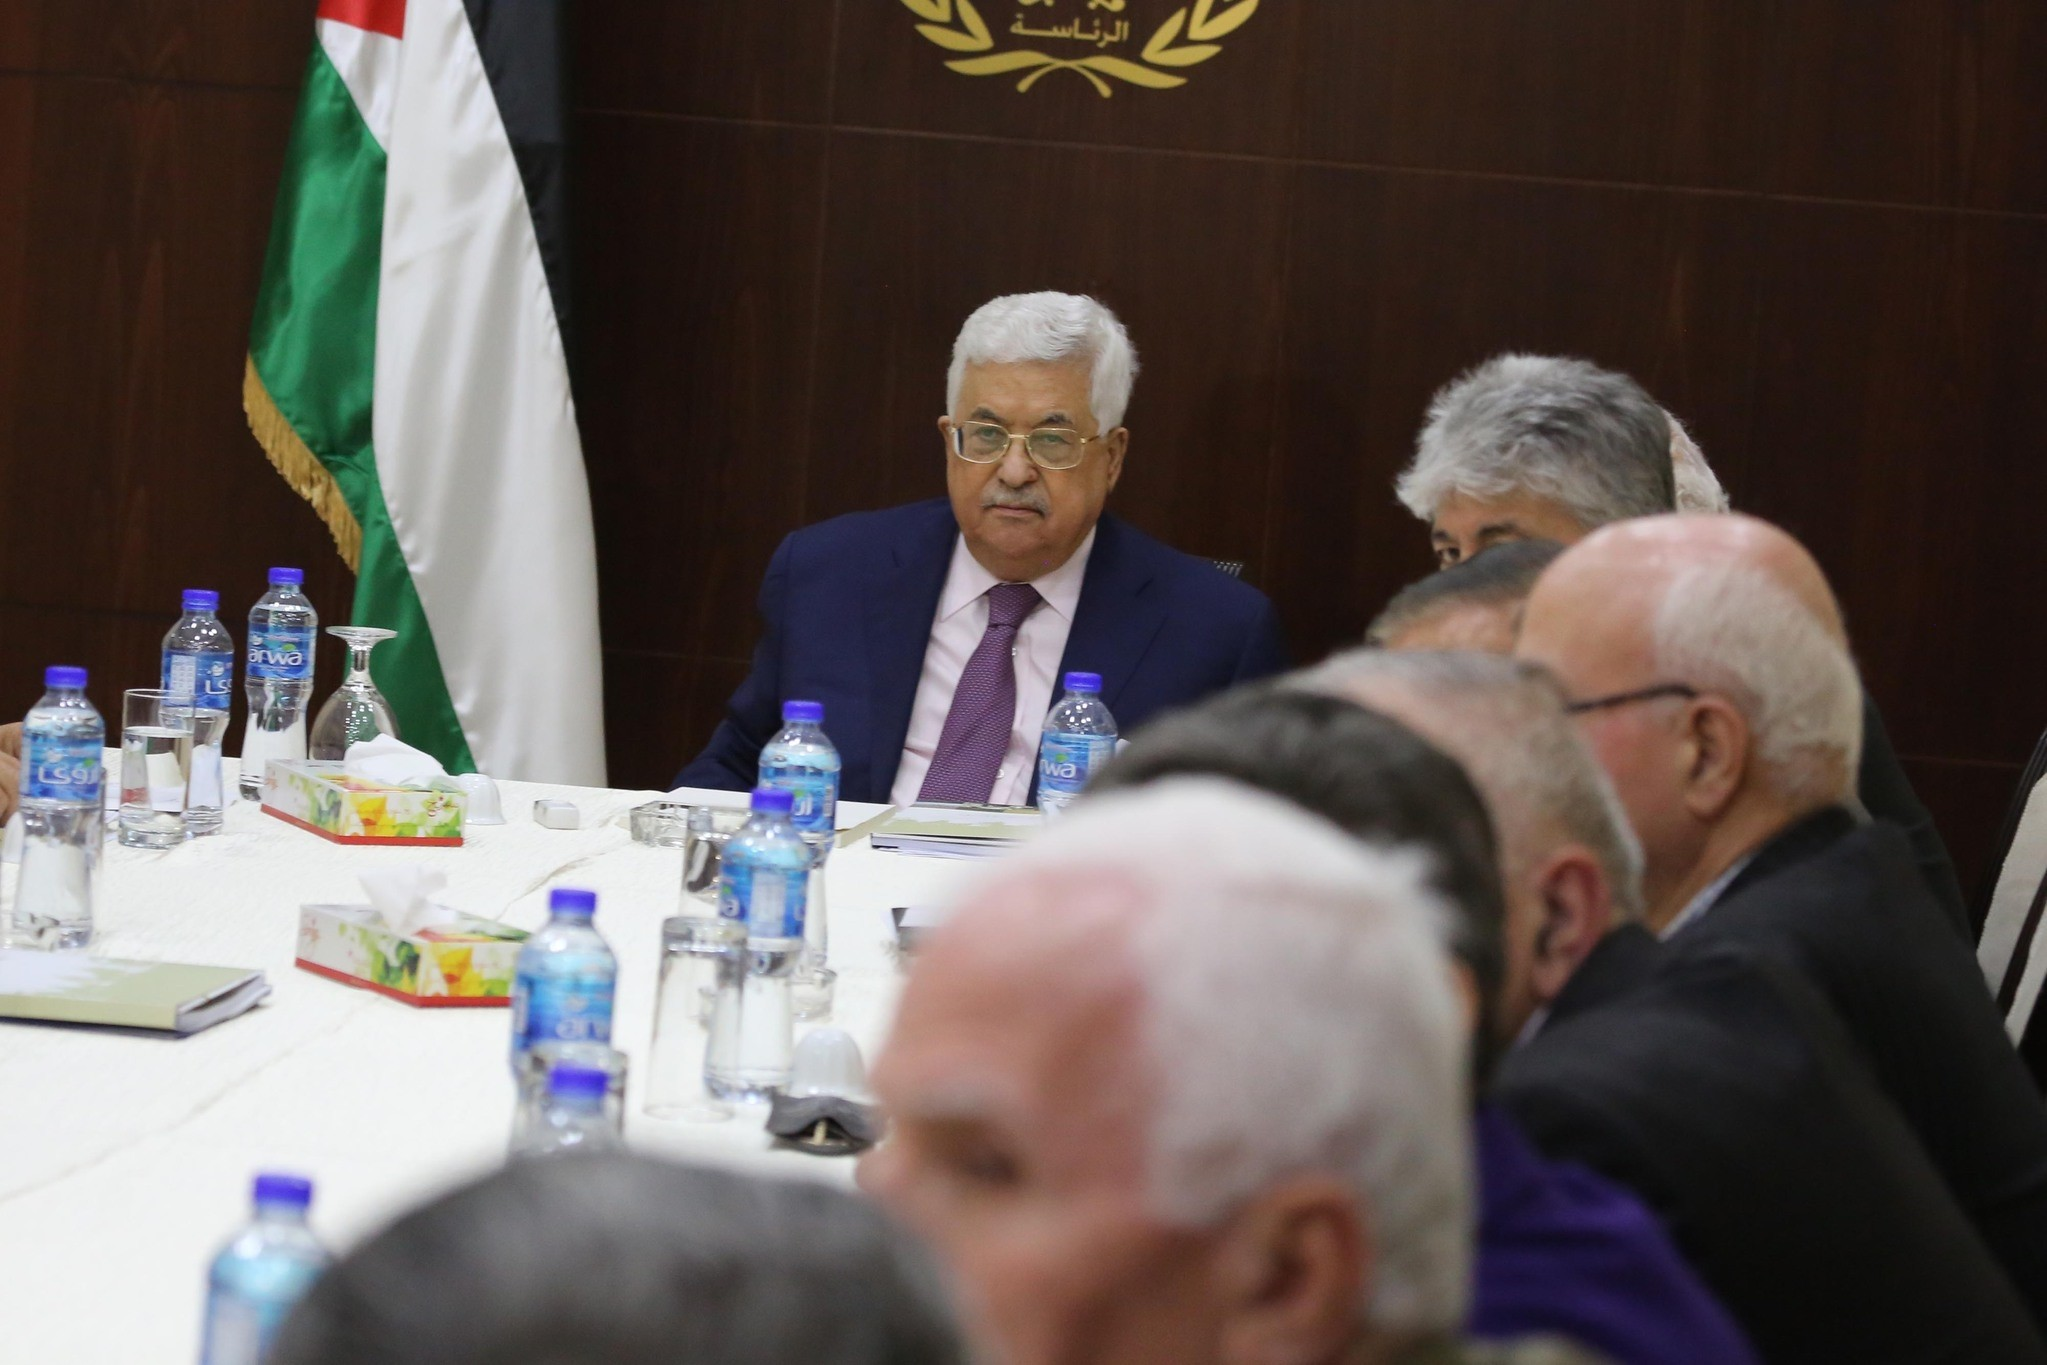 Palestinian President Mahmoud Abbas attends the Palestine Liberation Organization (PLO) Executive Committe meeting at the Presidential residency in West Bank, Palestine. (AA Photo)